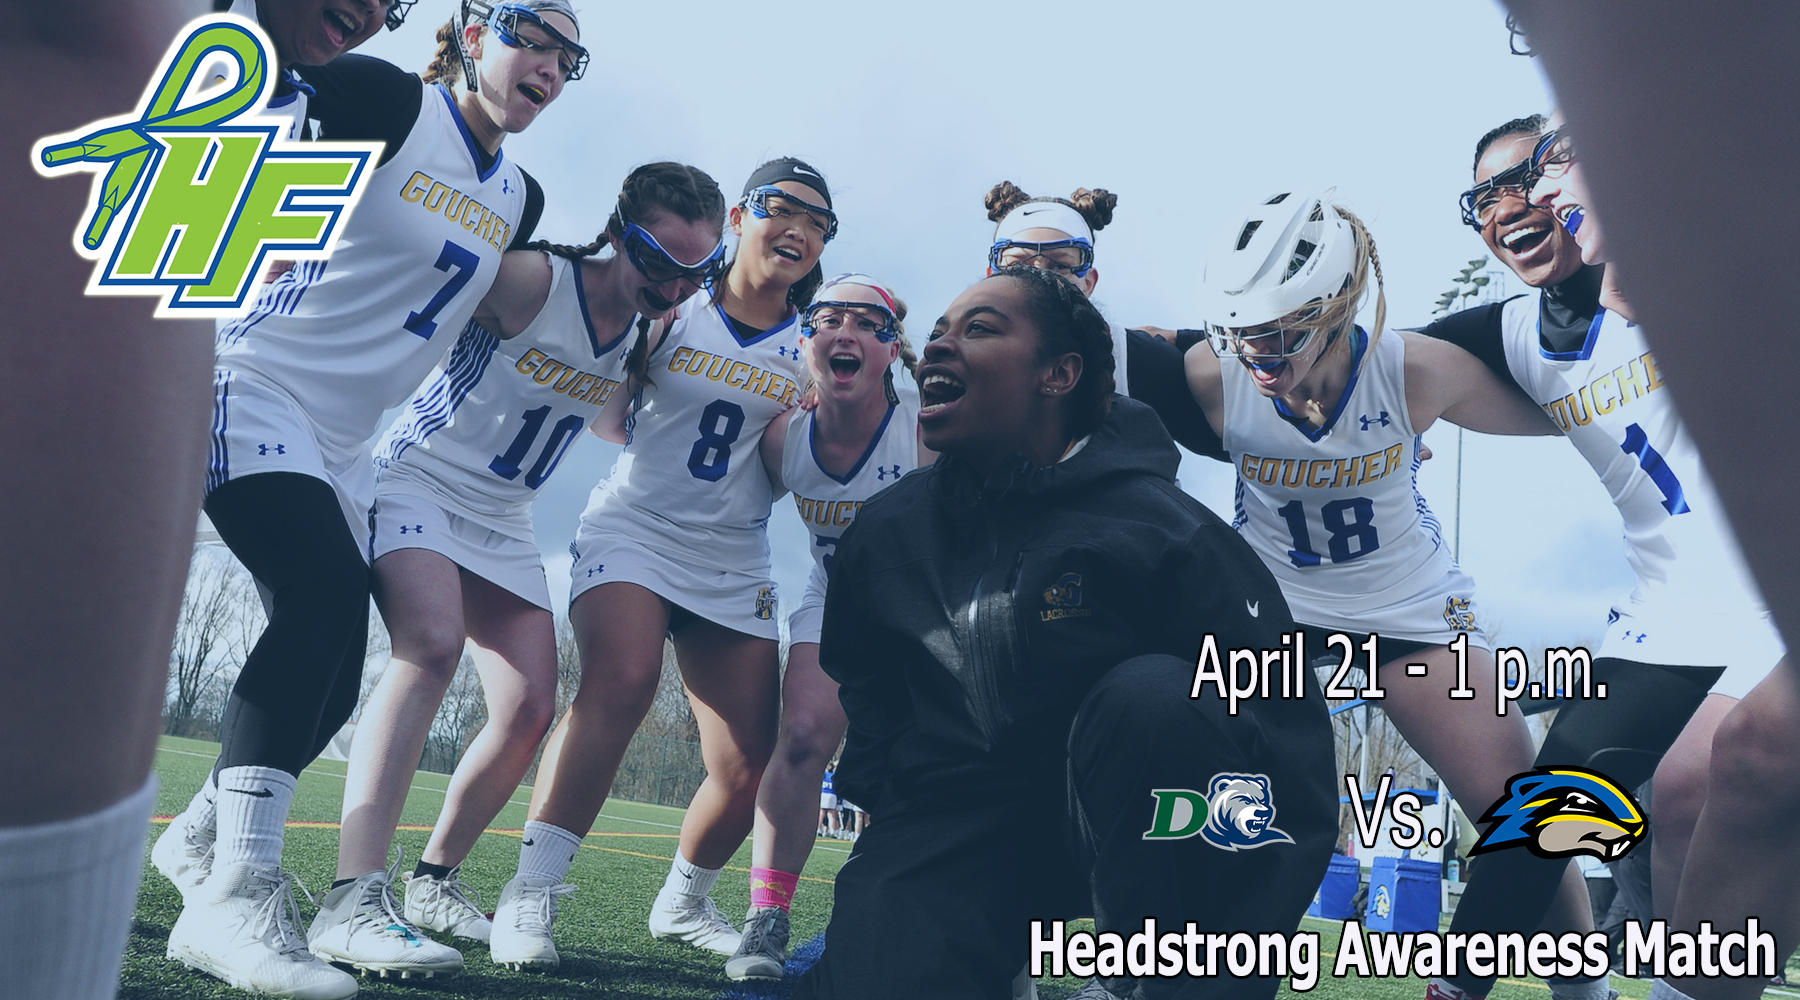 Women's Lacrosse Program to Host HEADstrong Awareness Match Saturday vs. Drew